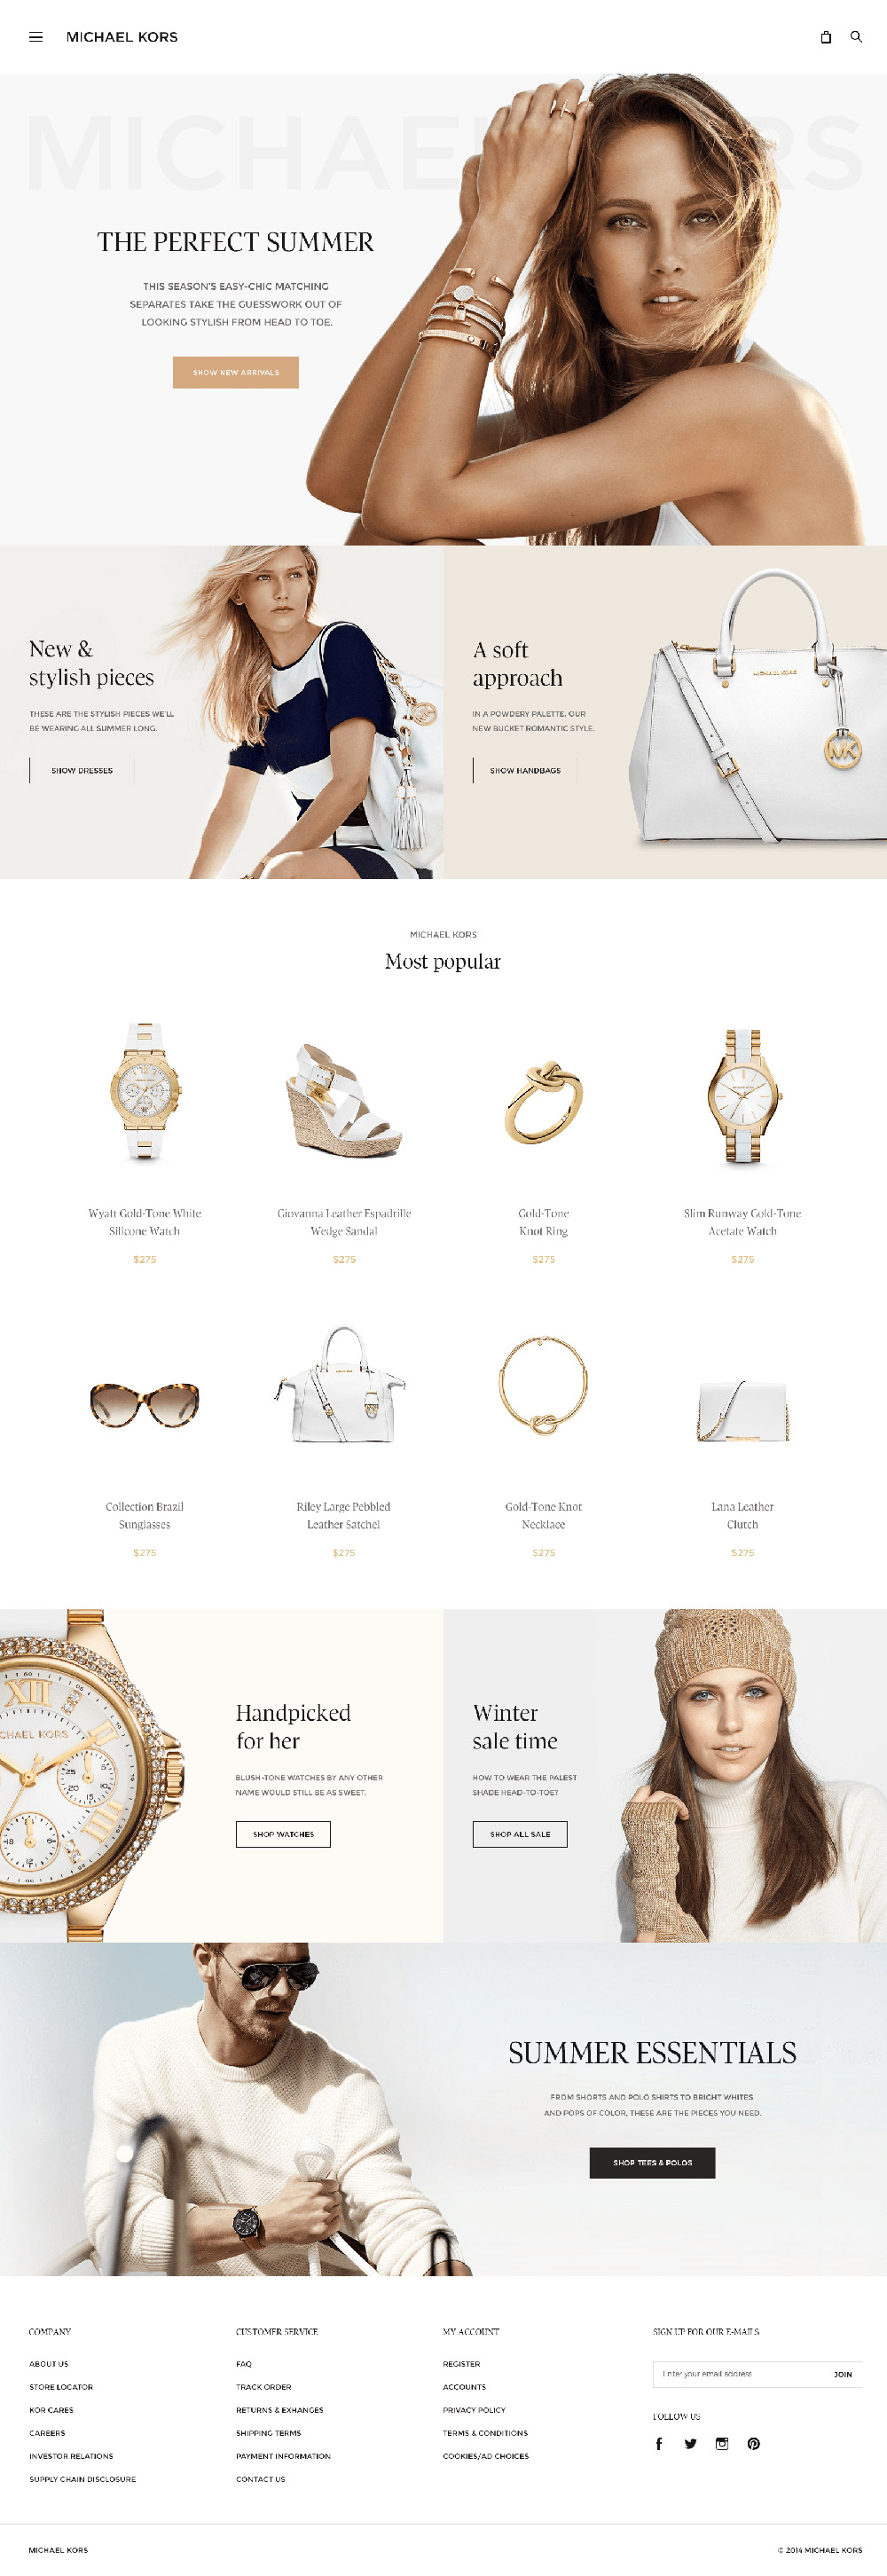 Michael Kors re-design by by Dejan Markovic